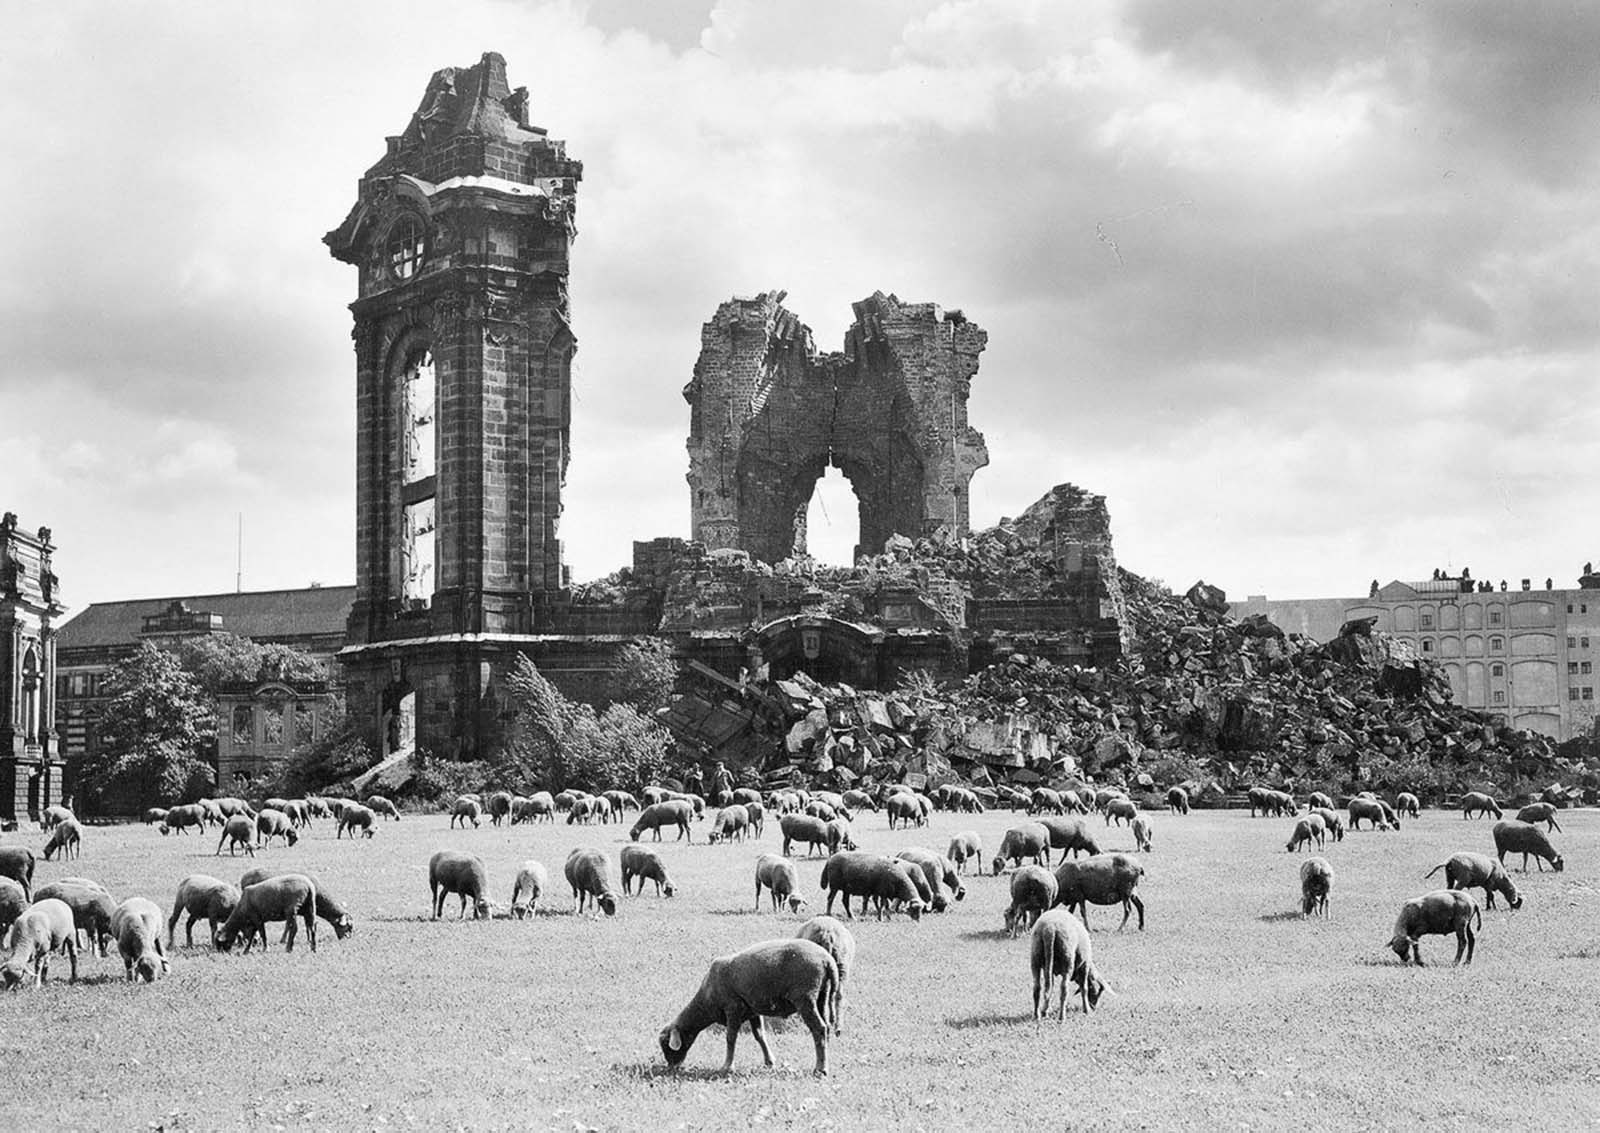 Sheep graze near the ruins of the Frauenkirche. 1957.